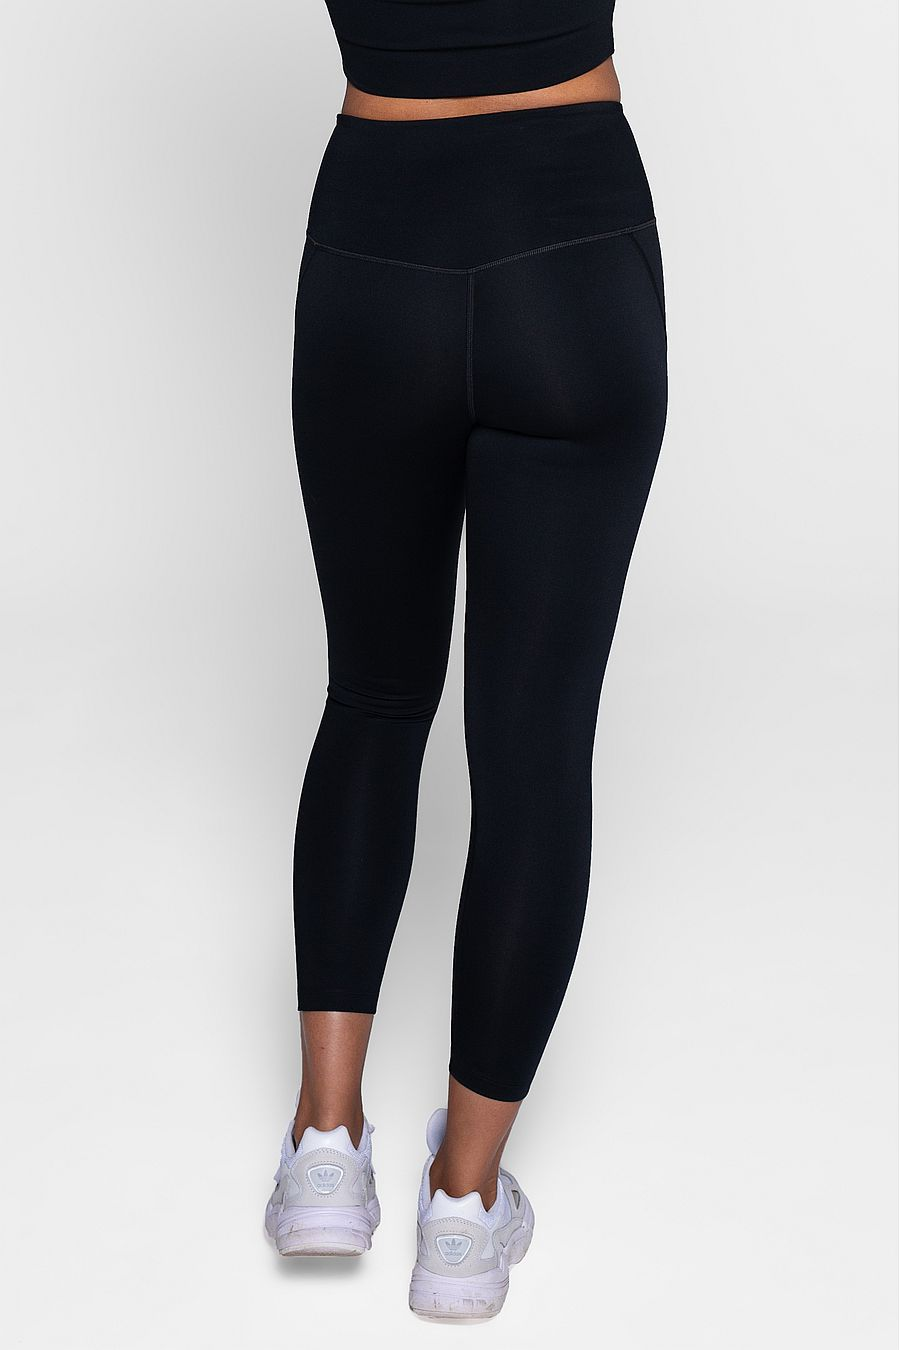 "Girlfriend Collective Black Compressive Legging (23 3/4"")"